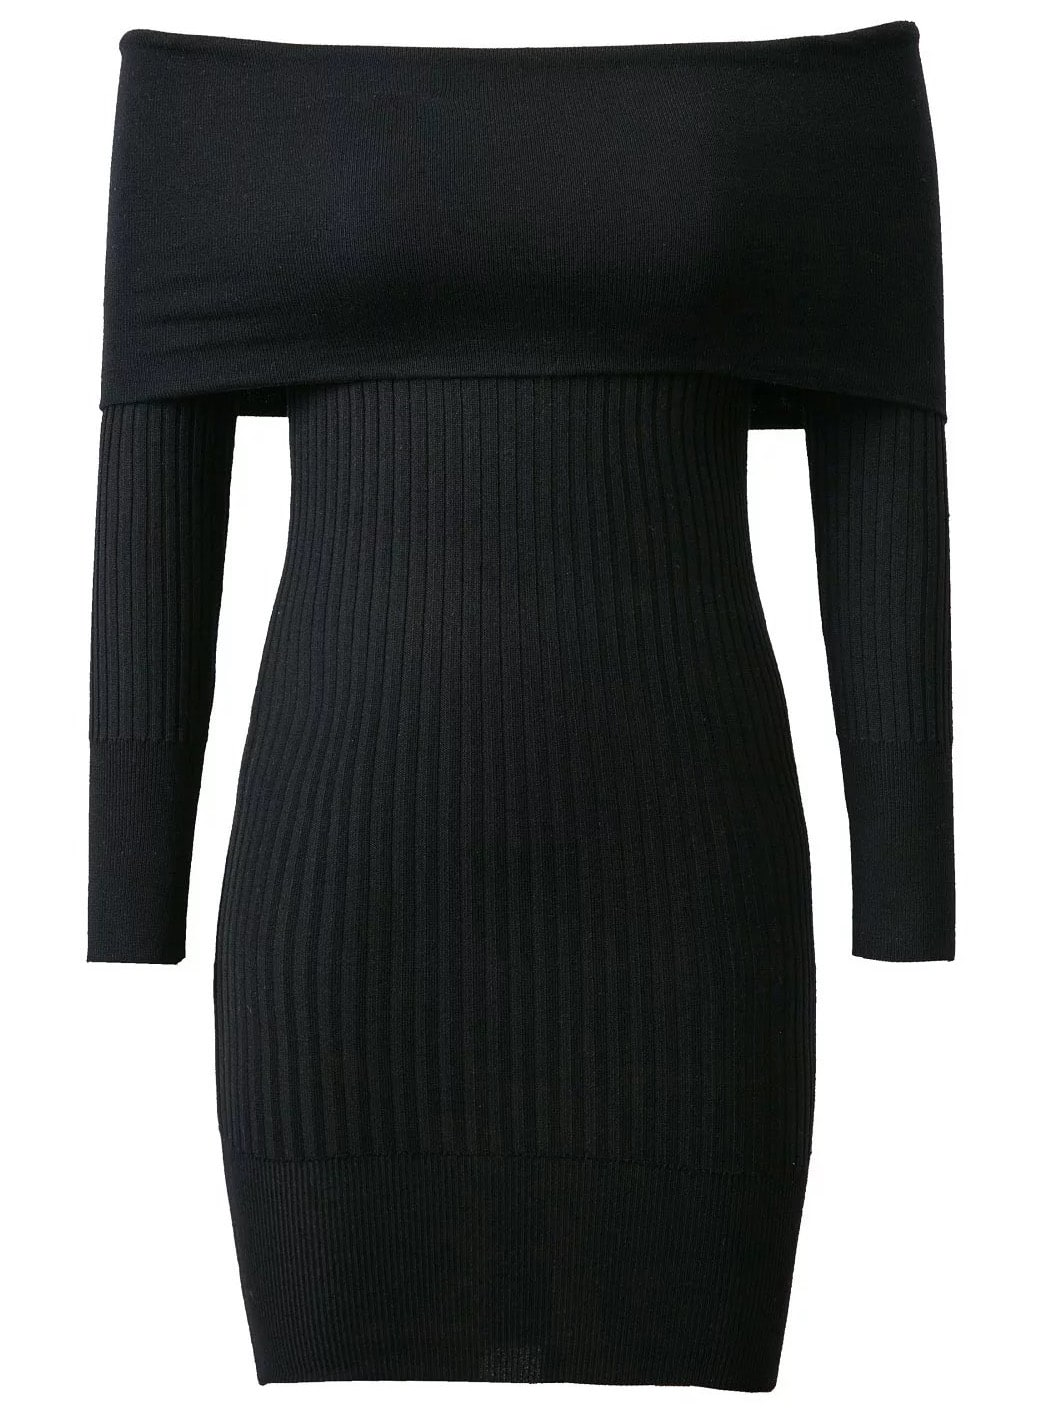 Black Ribbed Off The Shoulder Knit Bodycon Dress dress161028203